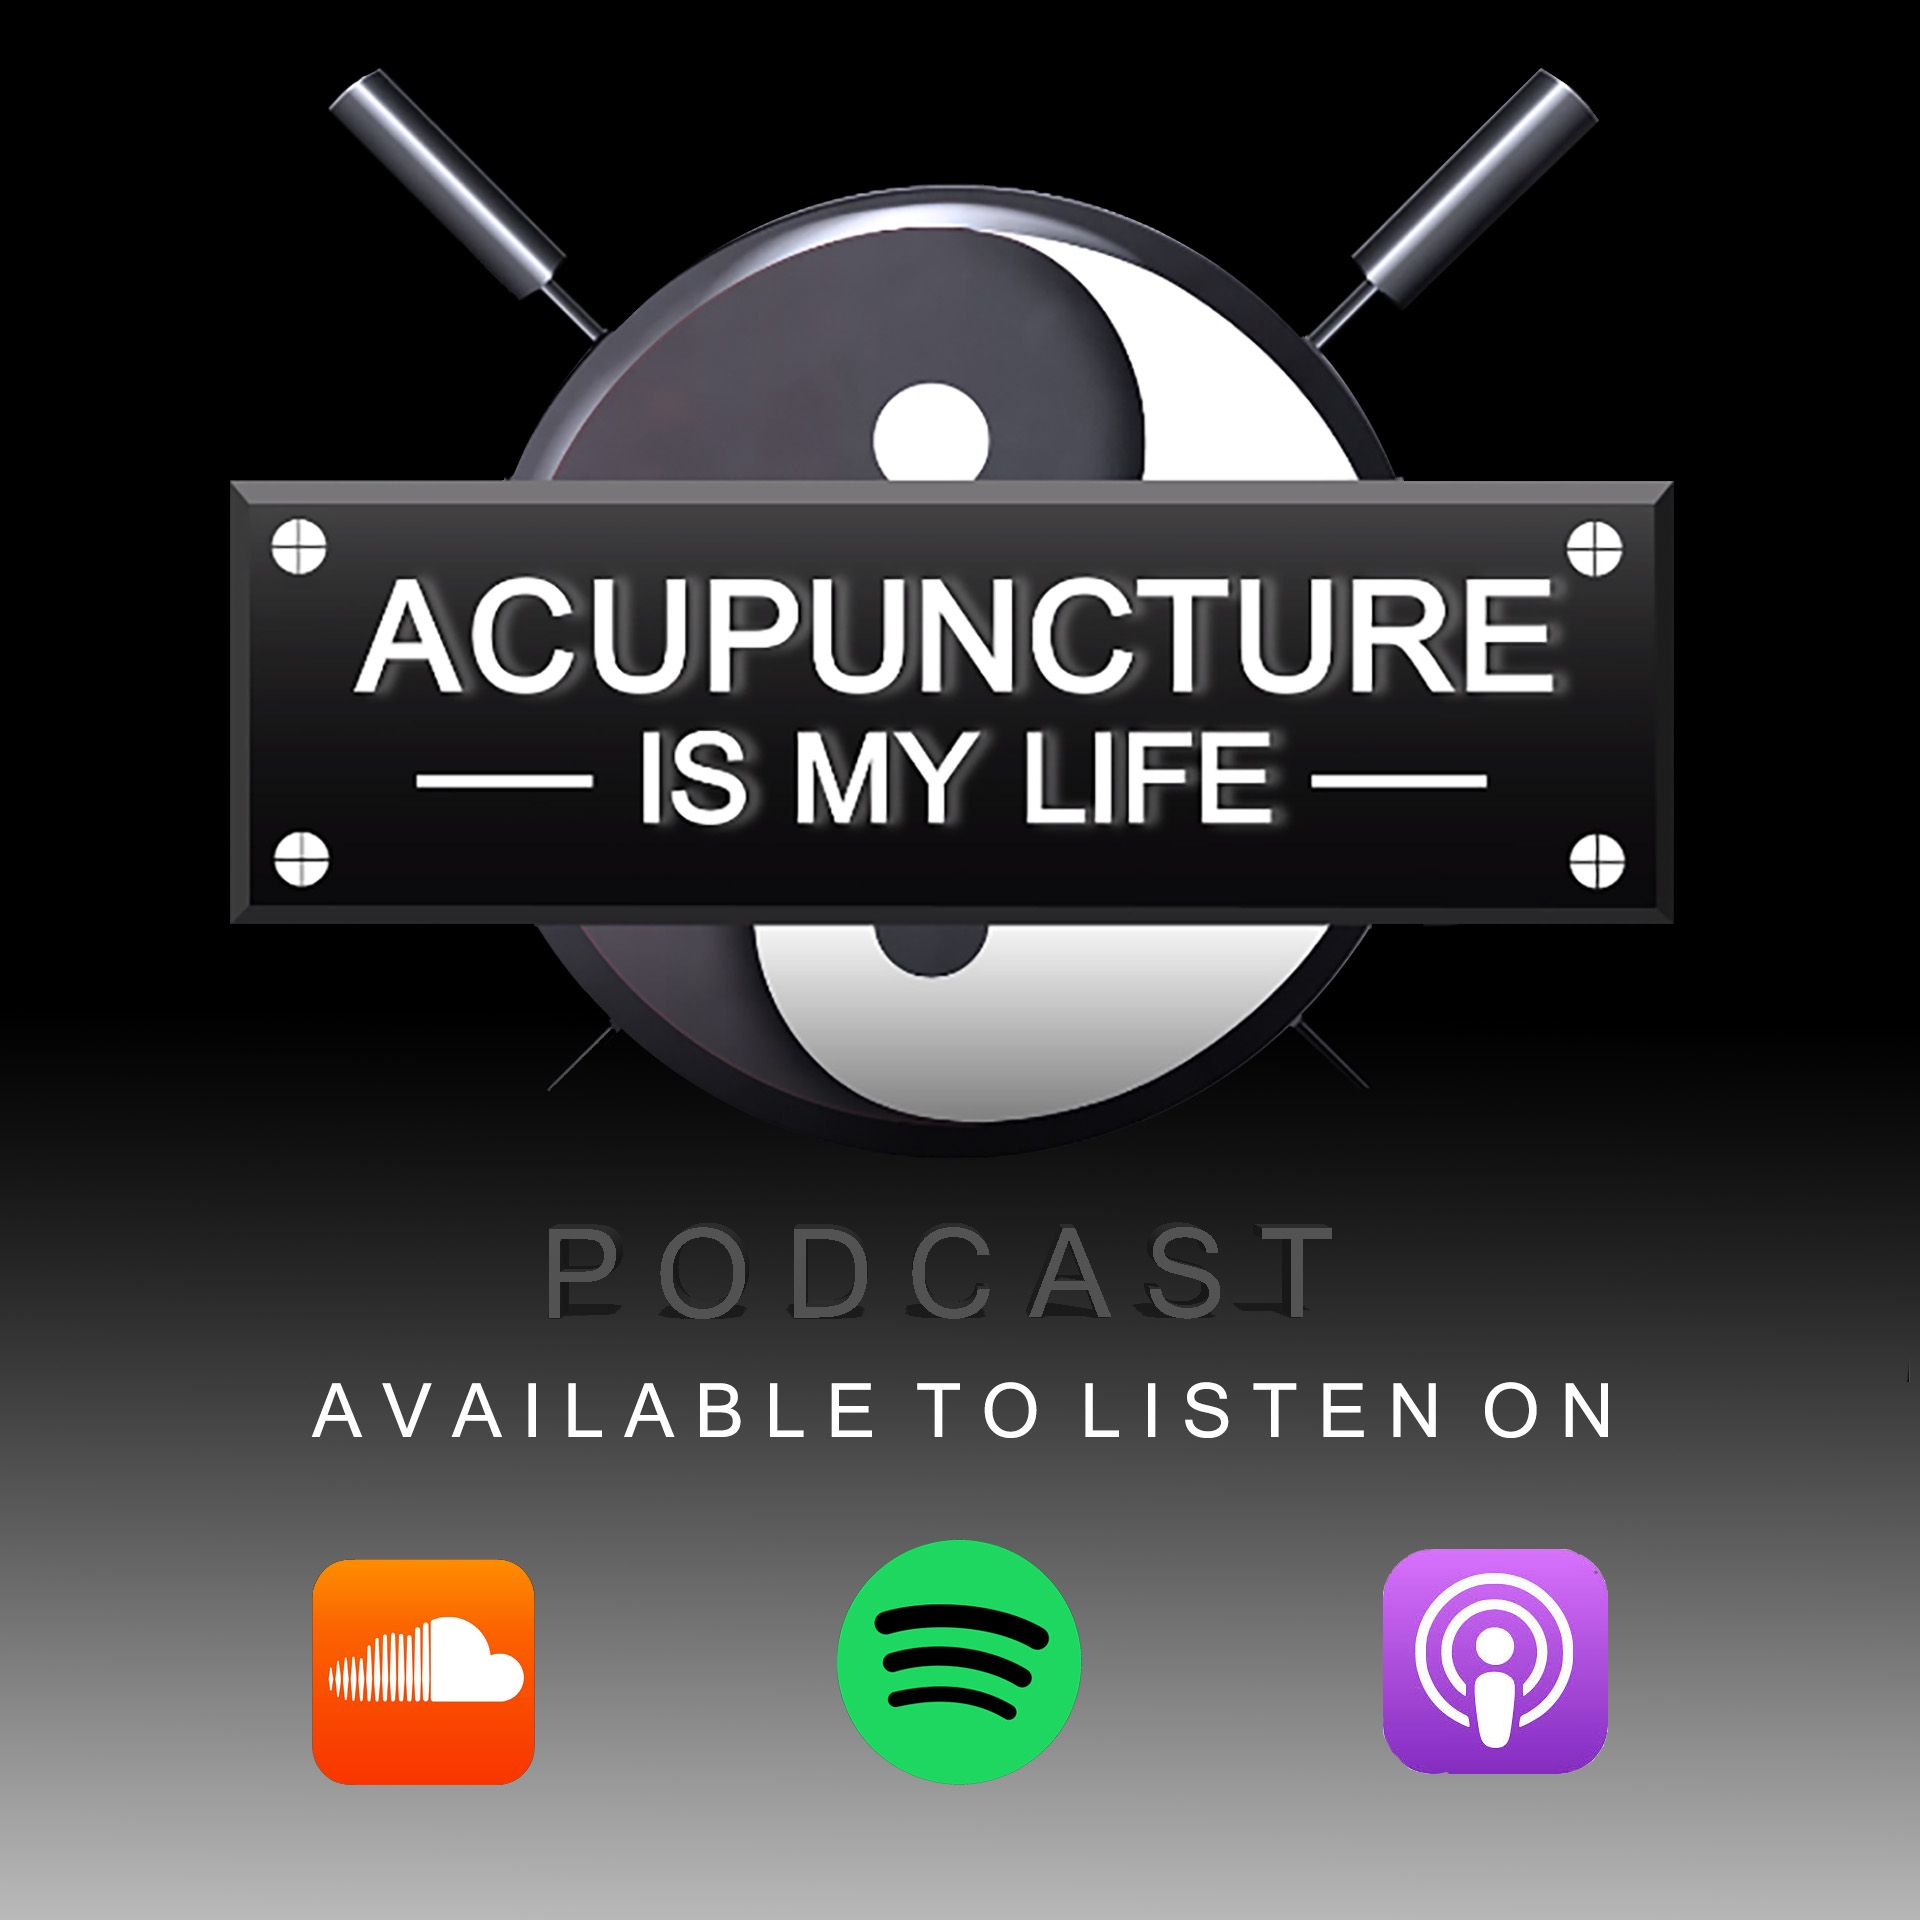 My podcast, Acupuncture is my Life, is now live on iTunes